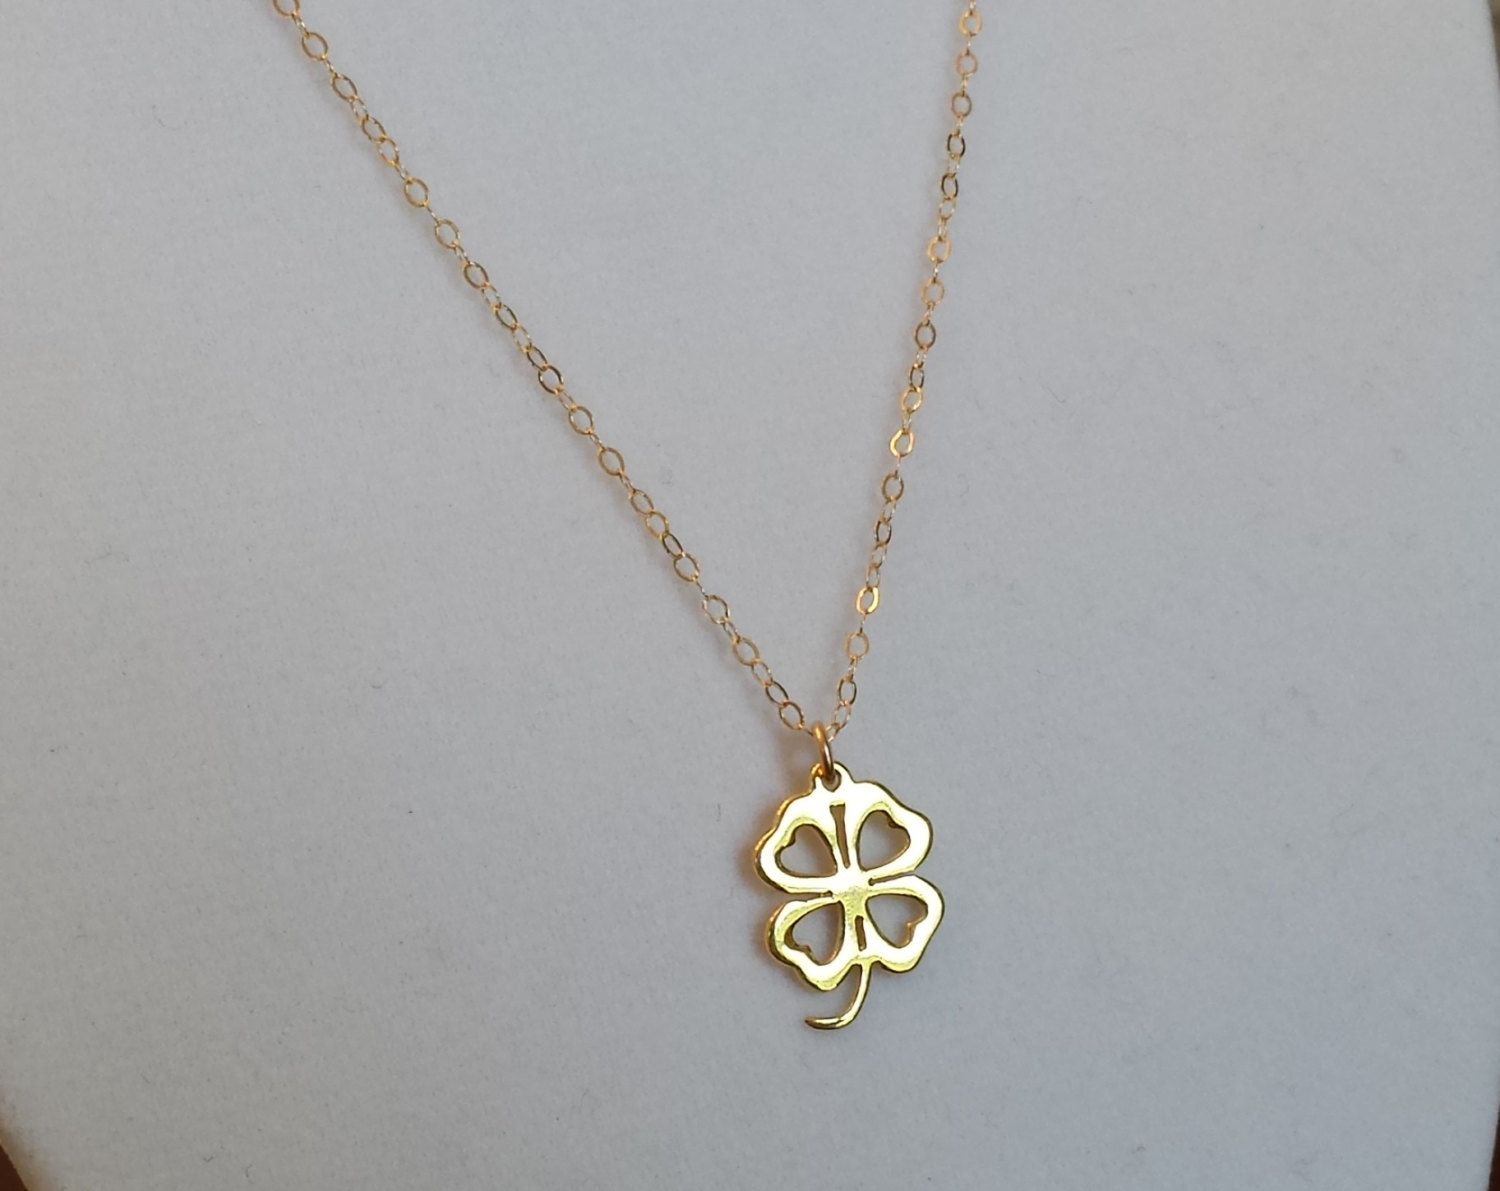 Sale 45 Off Tiny Gold Four Leaf Clover Necklace Good Luck Necklace 14k Gold Filled Chain Use Sh Four Leaf Clover Necklace Clover Necklace Good Luck Necklace